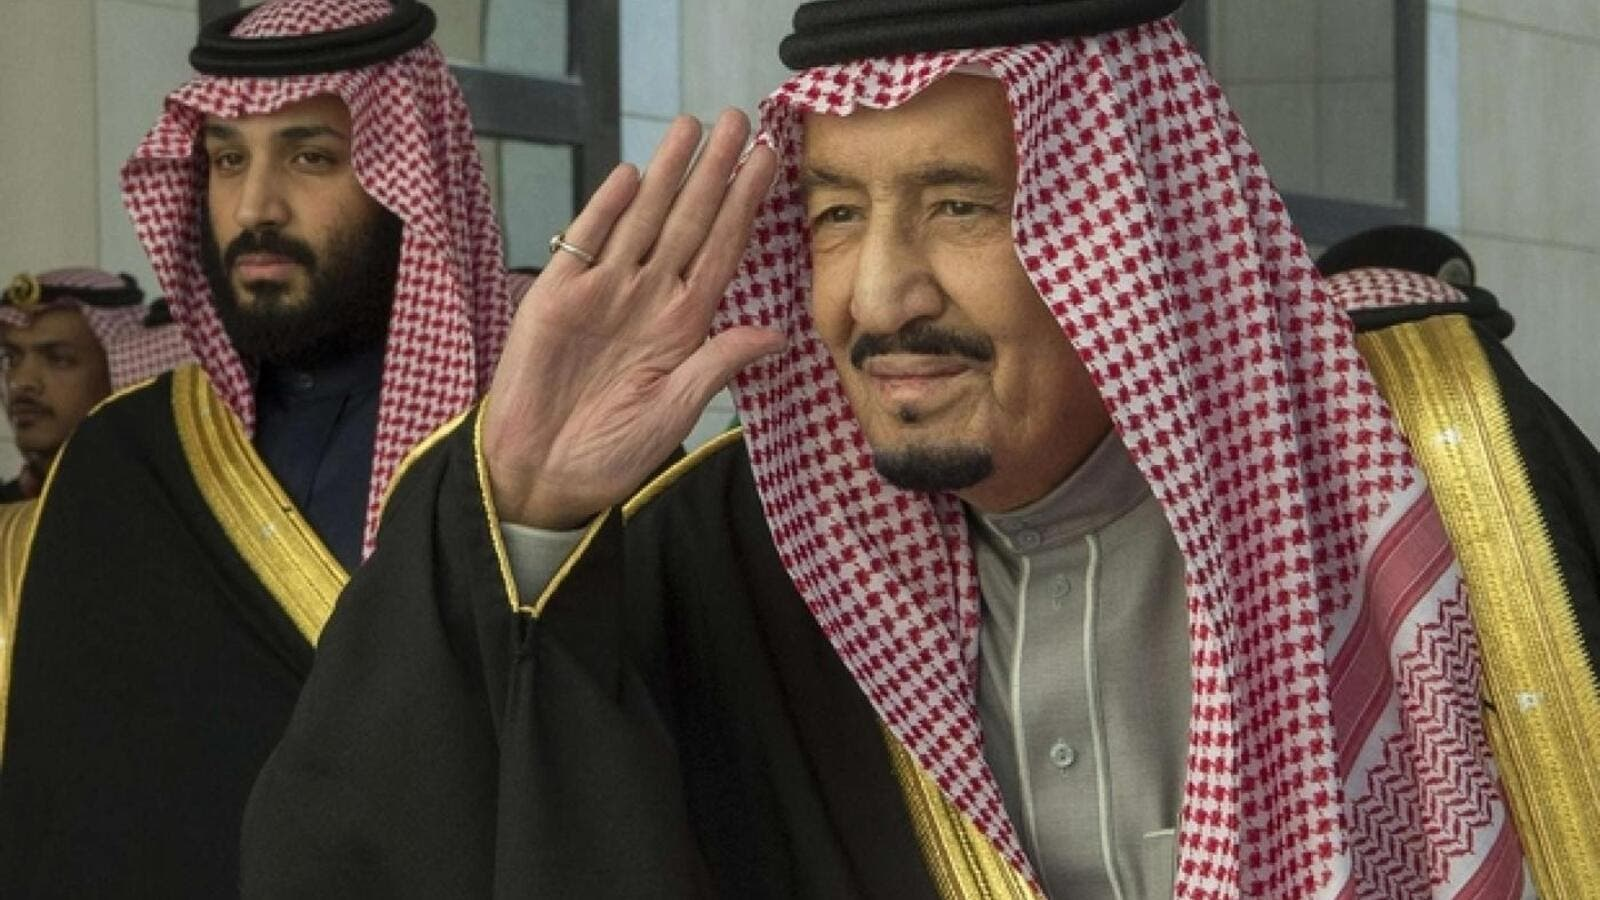 King Salman and Crown Prince Mohammed bin Salman. (AFP/ File Photo)